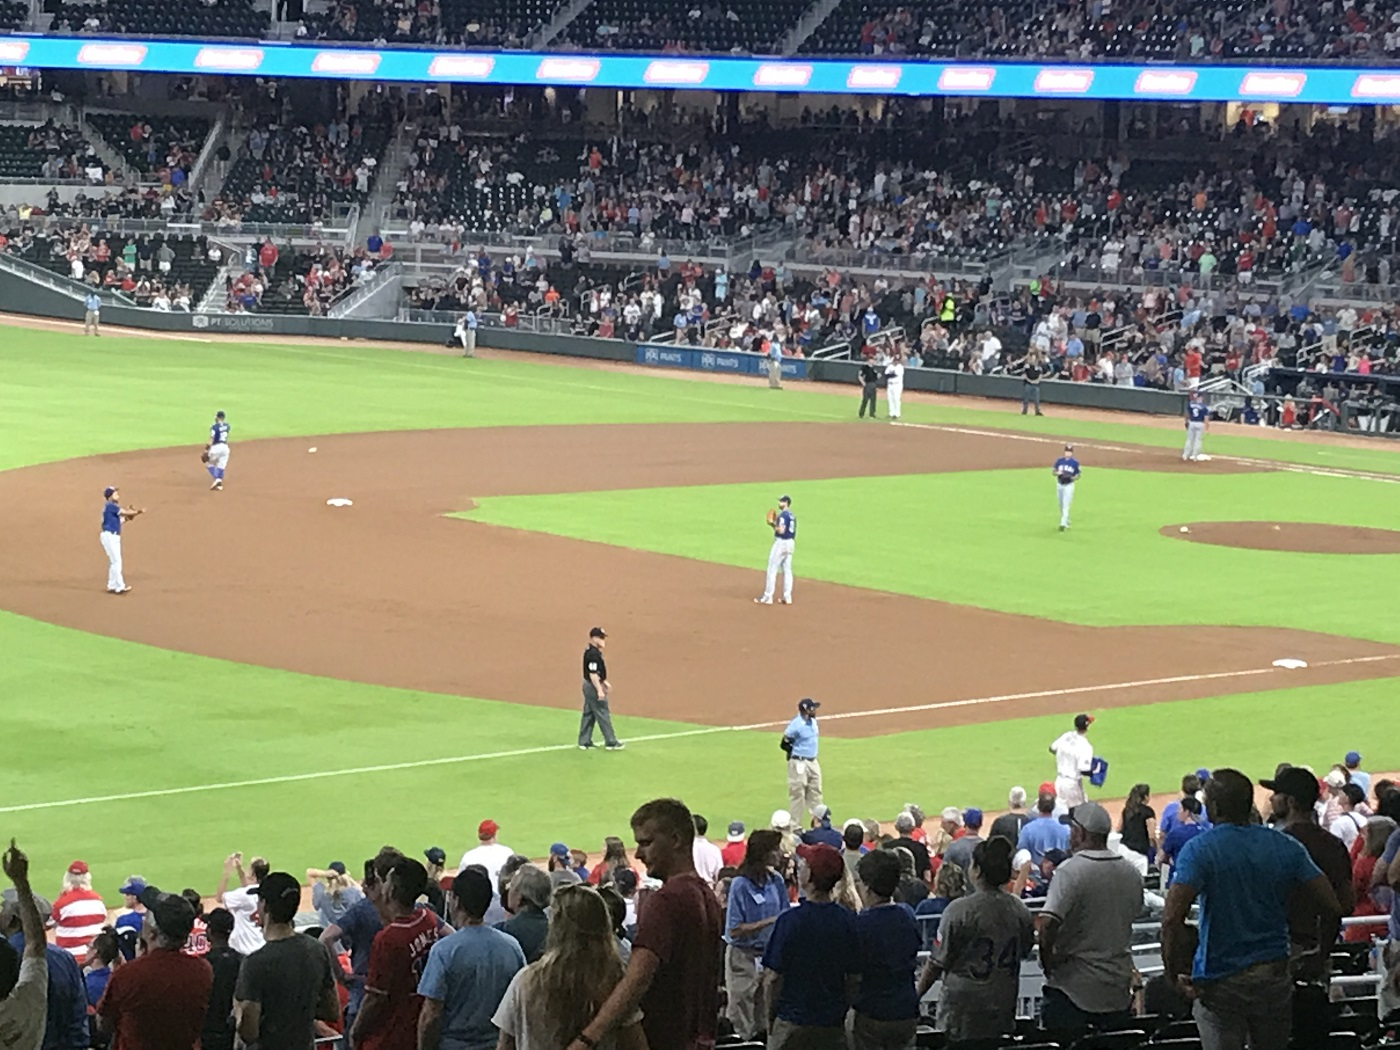 Rangers vs Braves